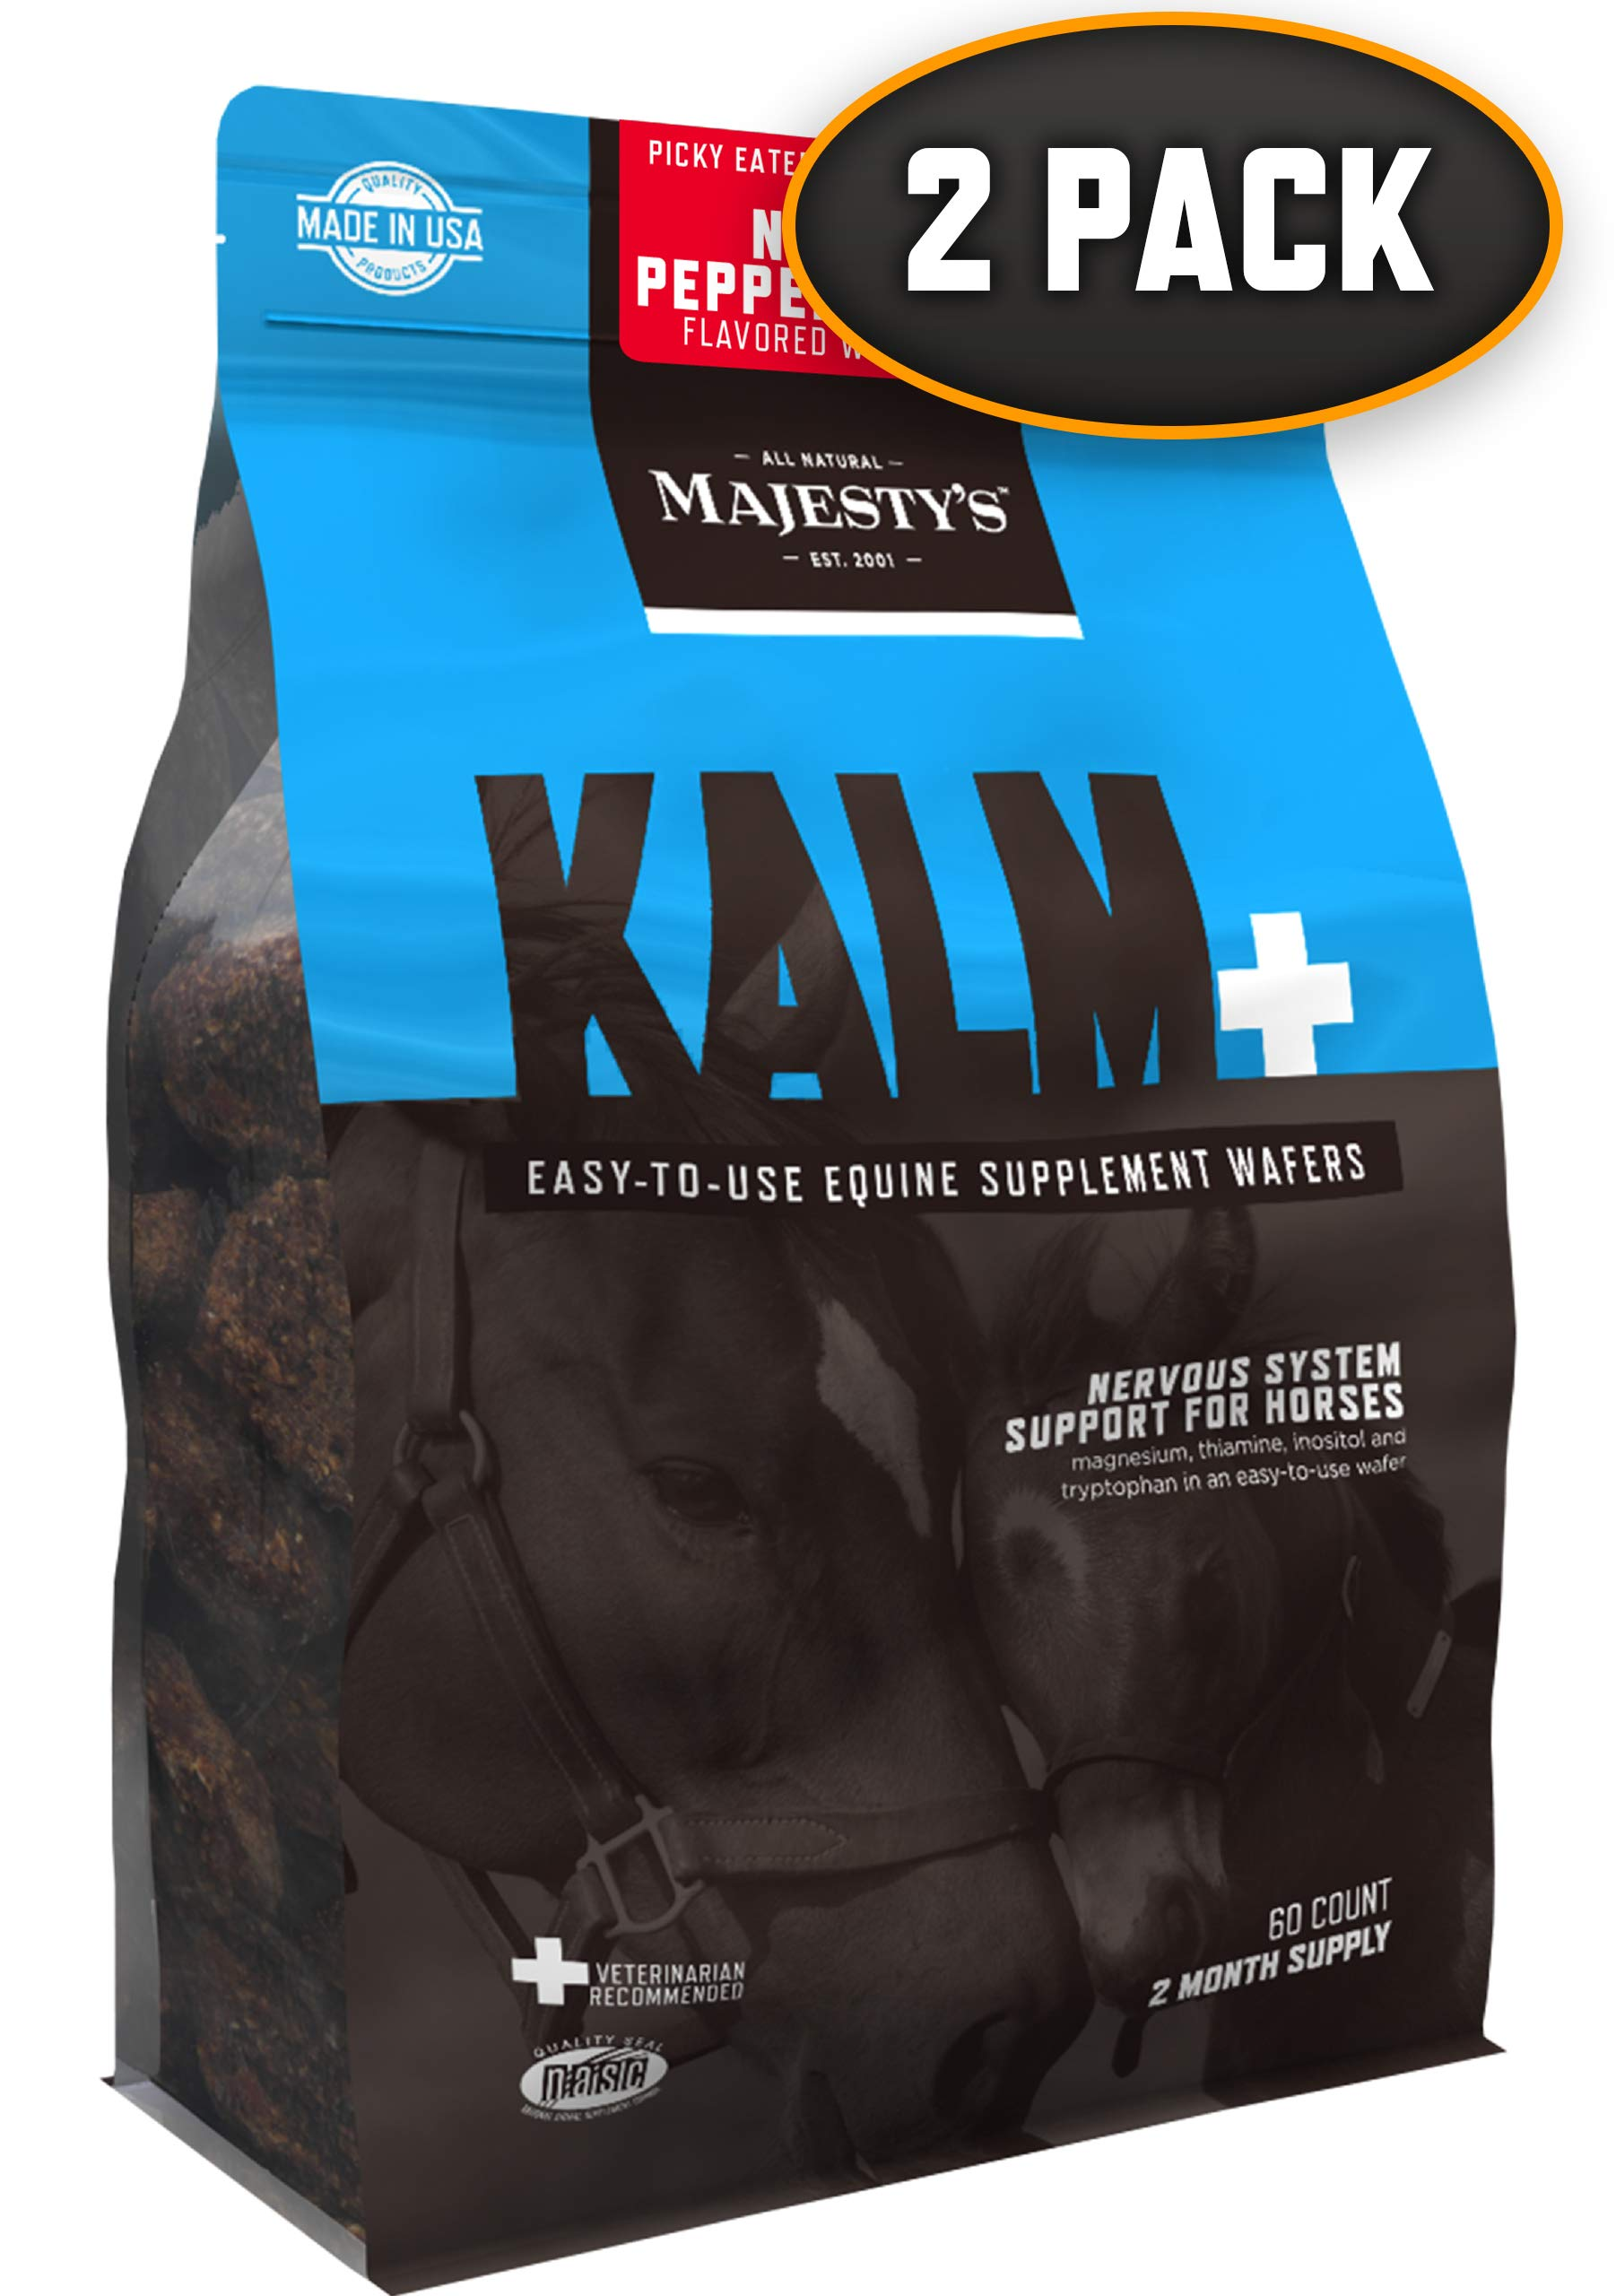 Majesty's Kalm+ Peppermint Wafers - Horse/Equine Balanced Behavior & Nervous System Function Supplement - Tryptophan, Vitamin B1 - Calming, Eases Anxiety/Fear/Anger - 4 Month Supply (2 Bags/120 Count) by Majesty's